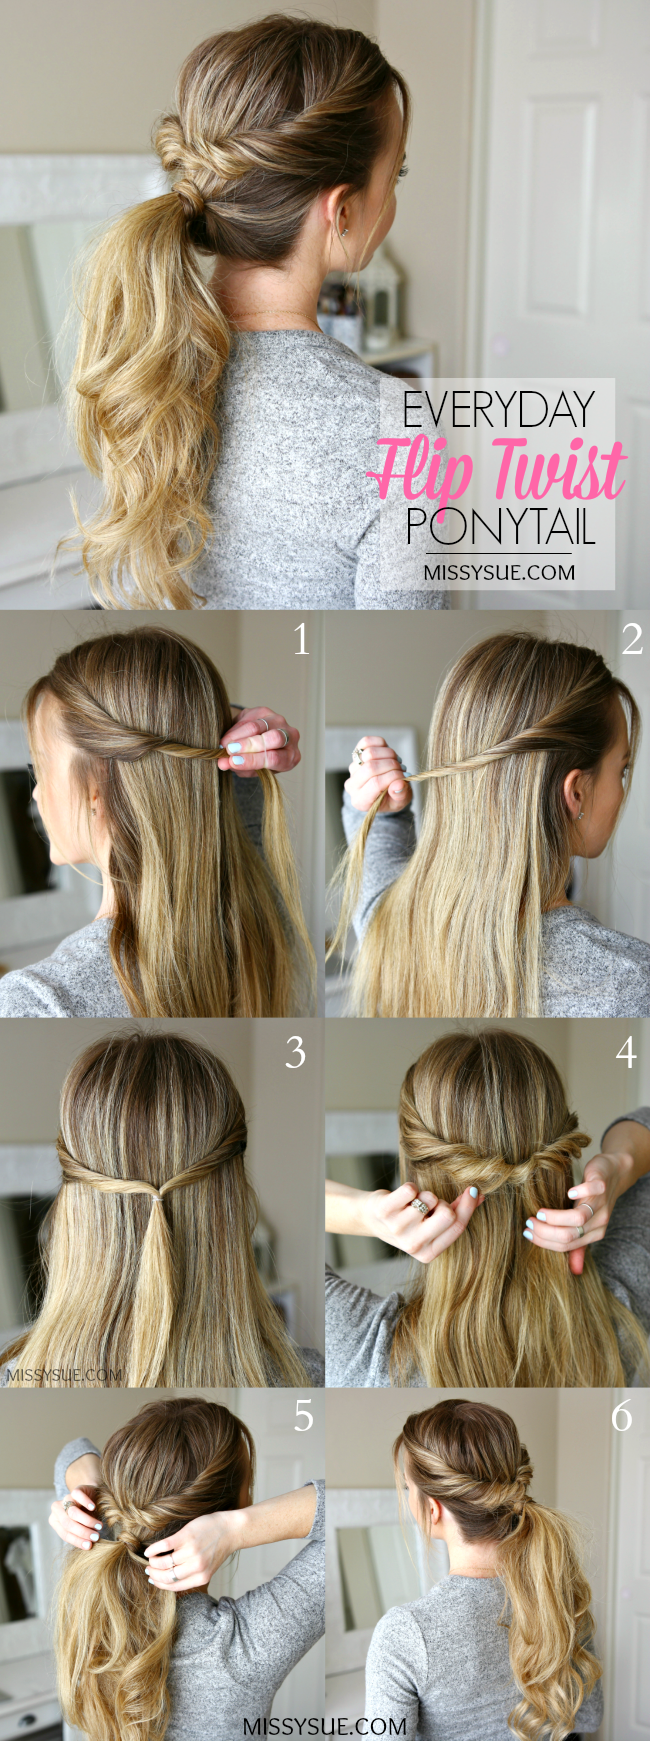 8 Updates On The Everyday Ponytail - diy Thought